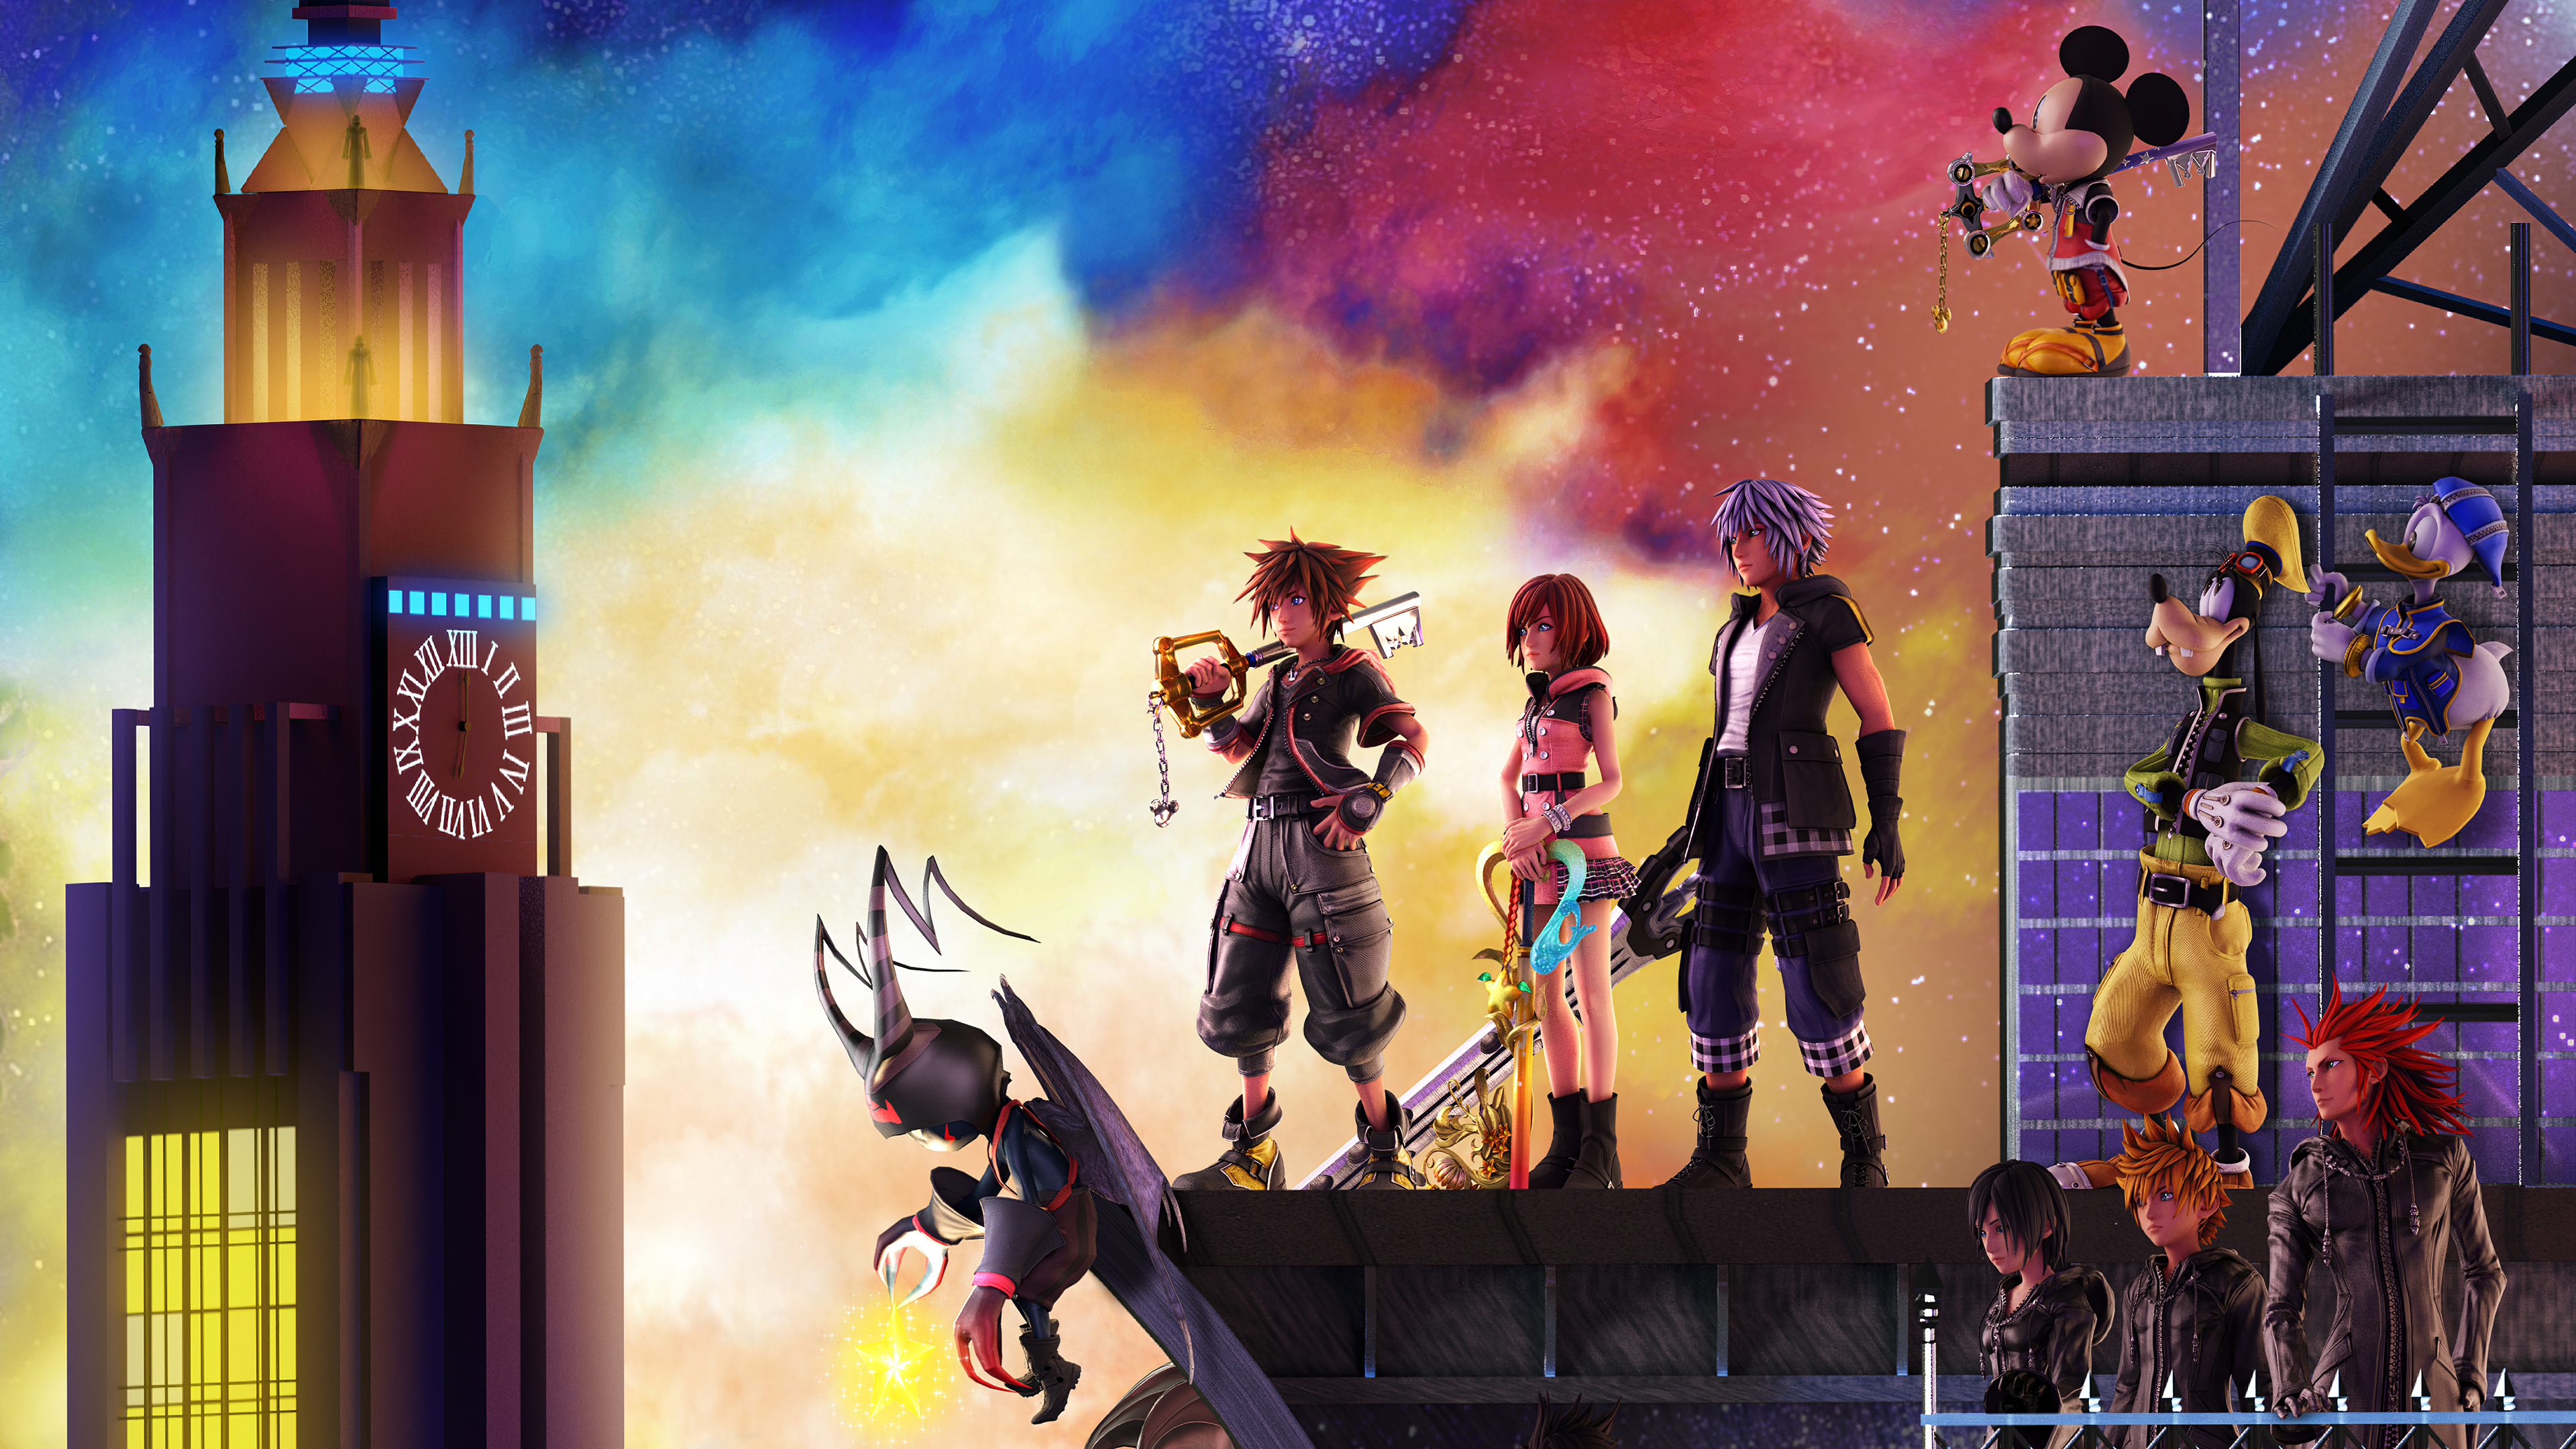 kingdom hearts iii 1572370691 - Kingdom Hearts III - kingdom hearts 3 wallpapers, hd-wallpapers, games wallpapers, 4k-wallpapers